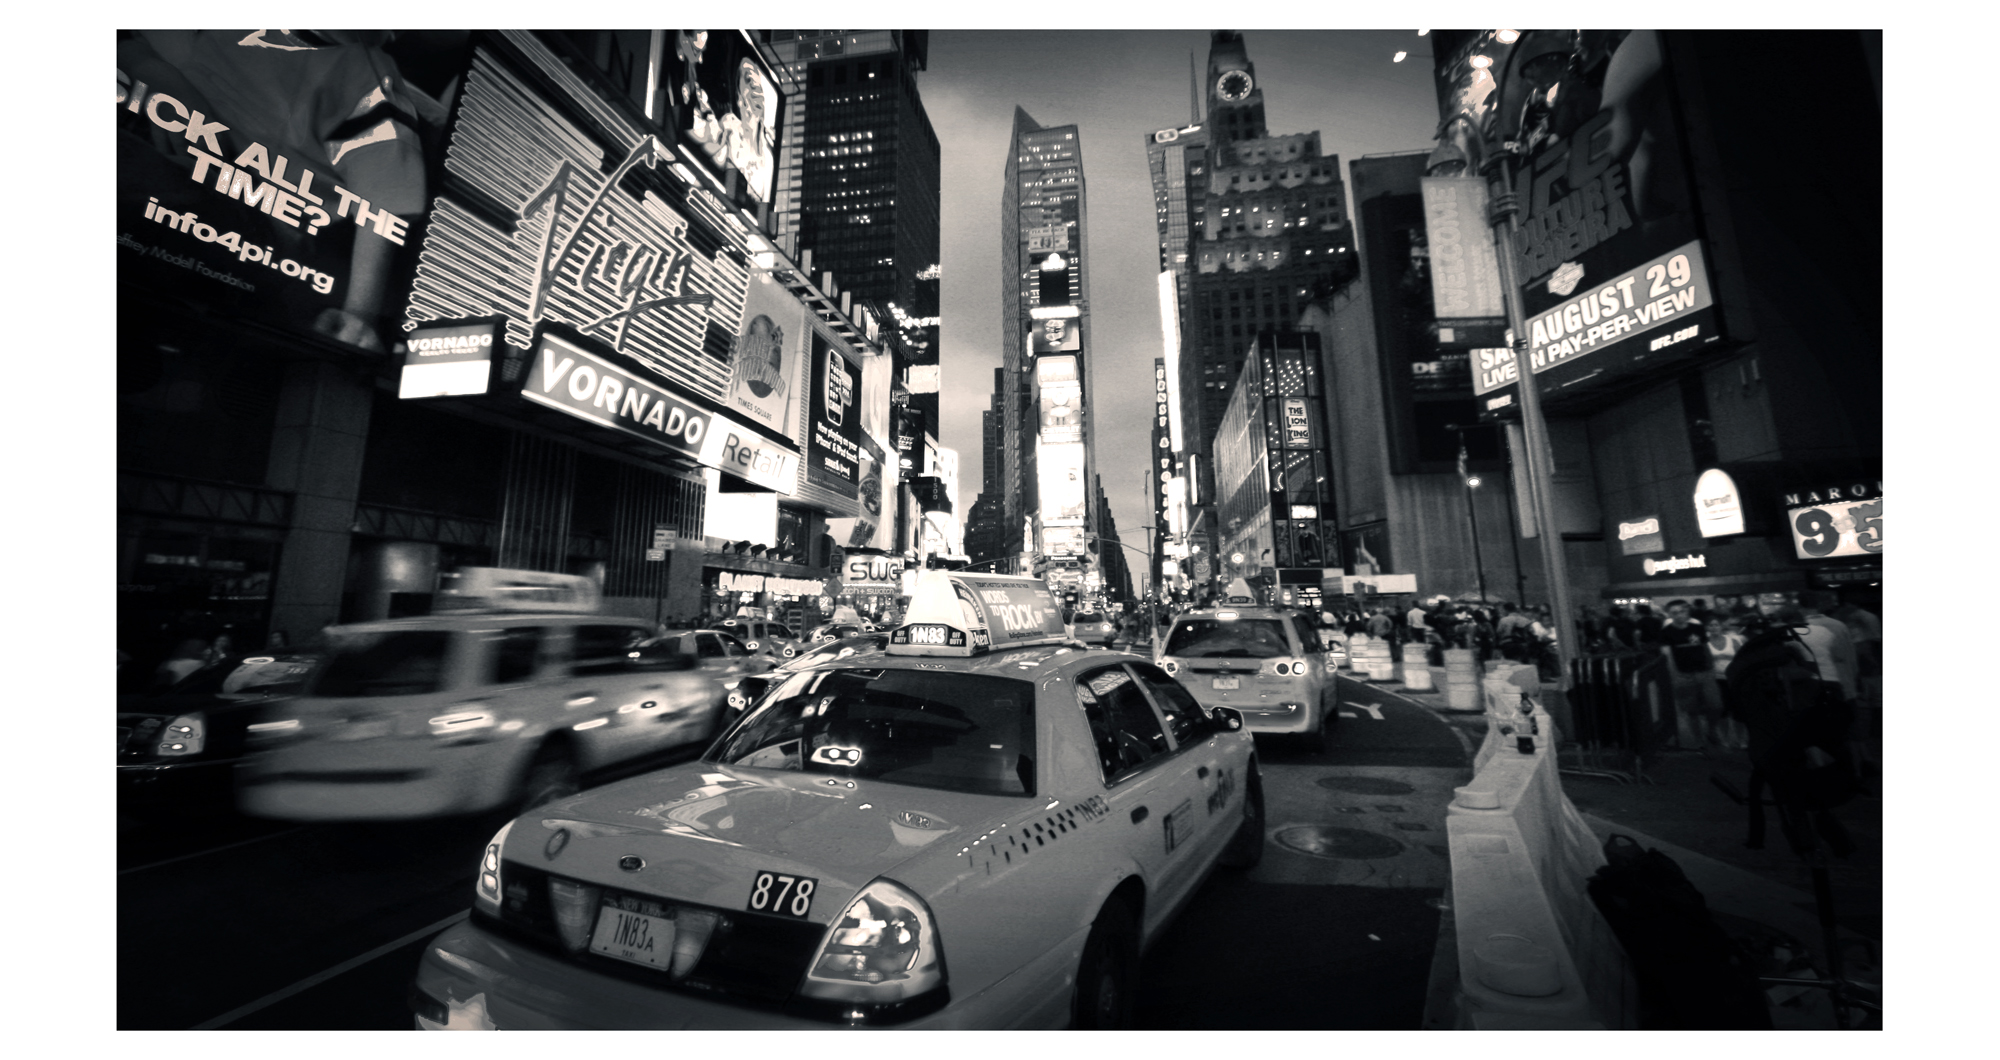 Taxi, please - New York